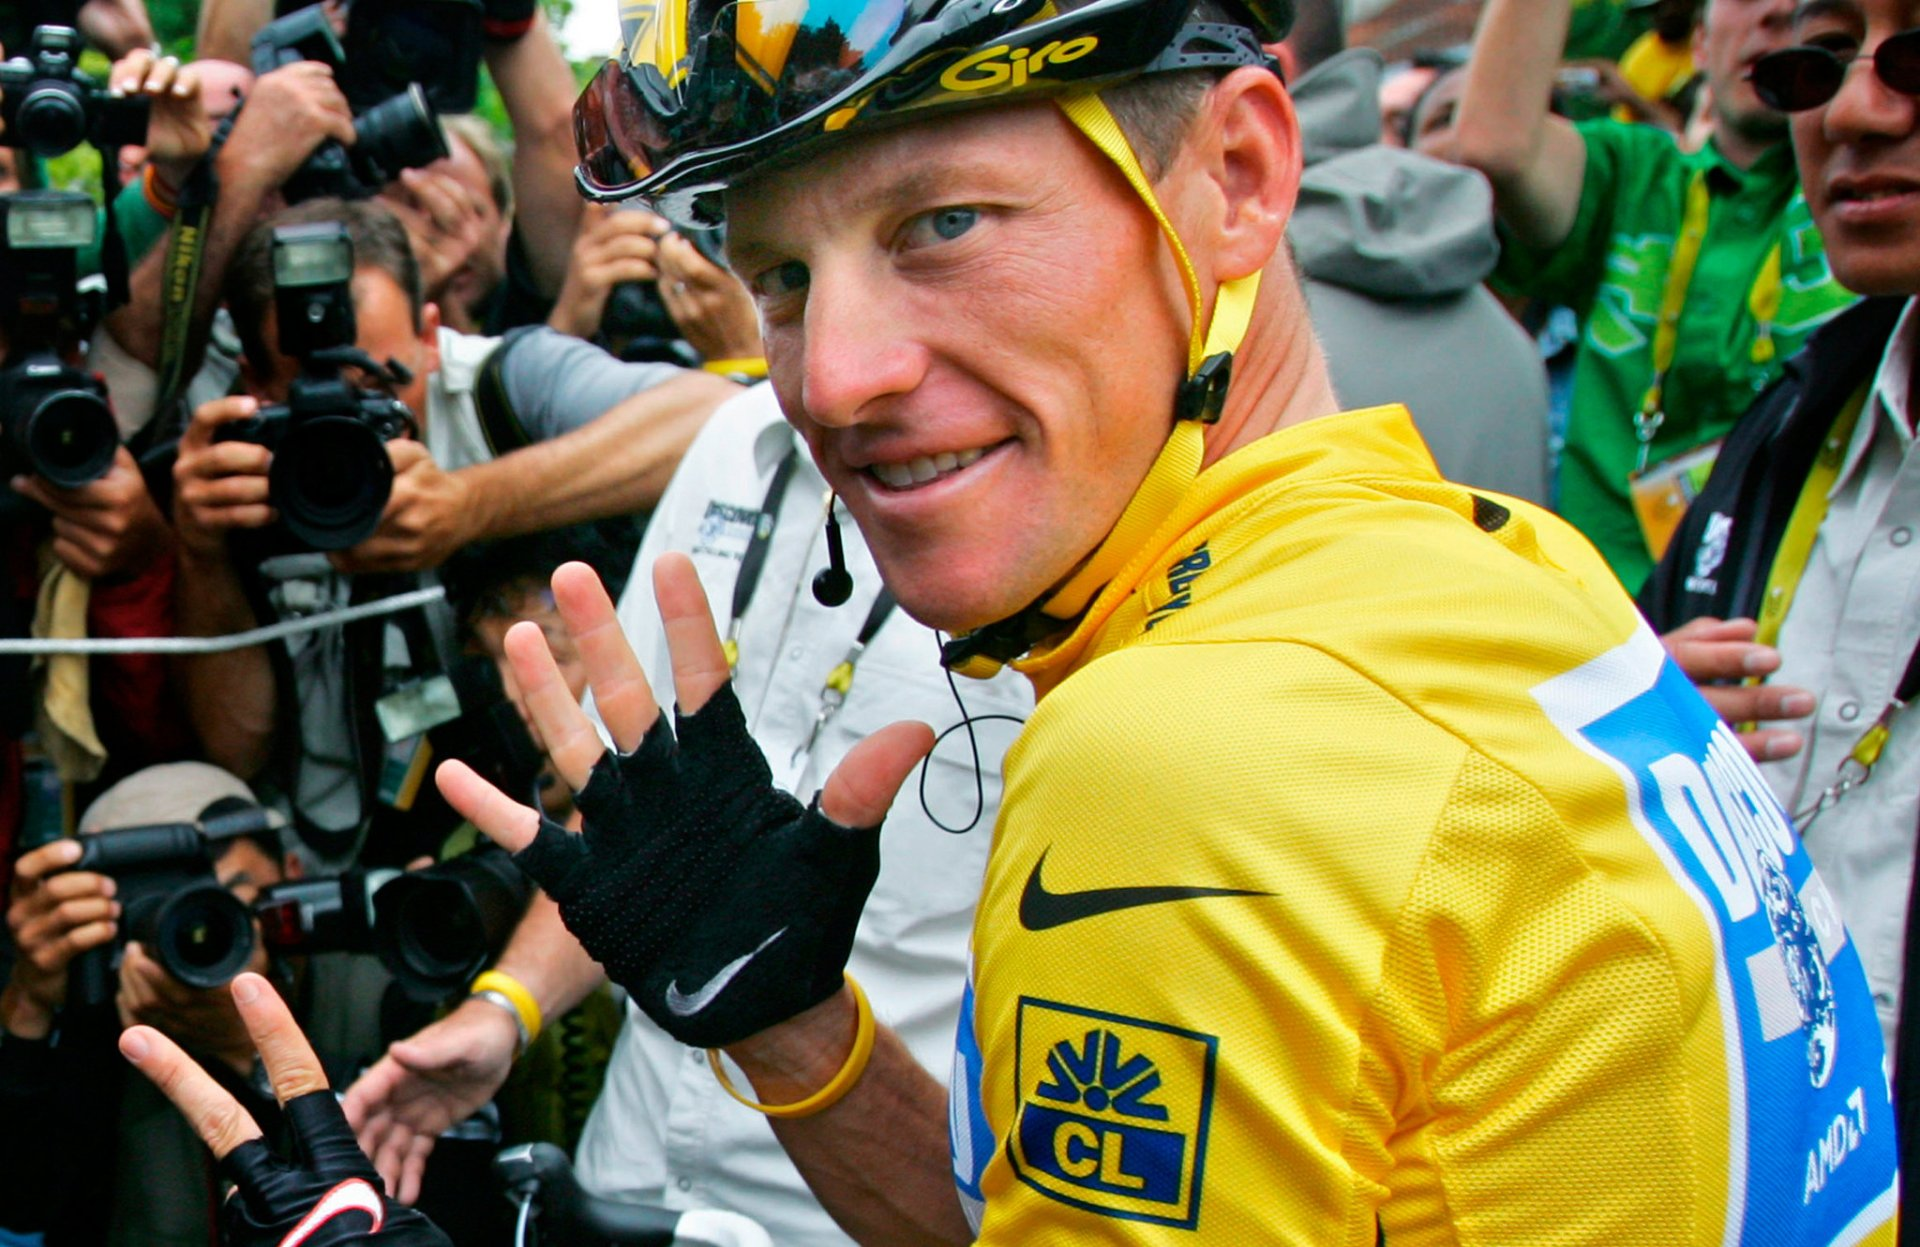 Lance Armstrong in 2005